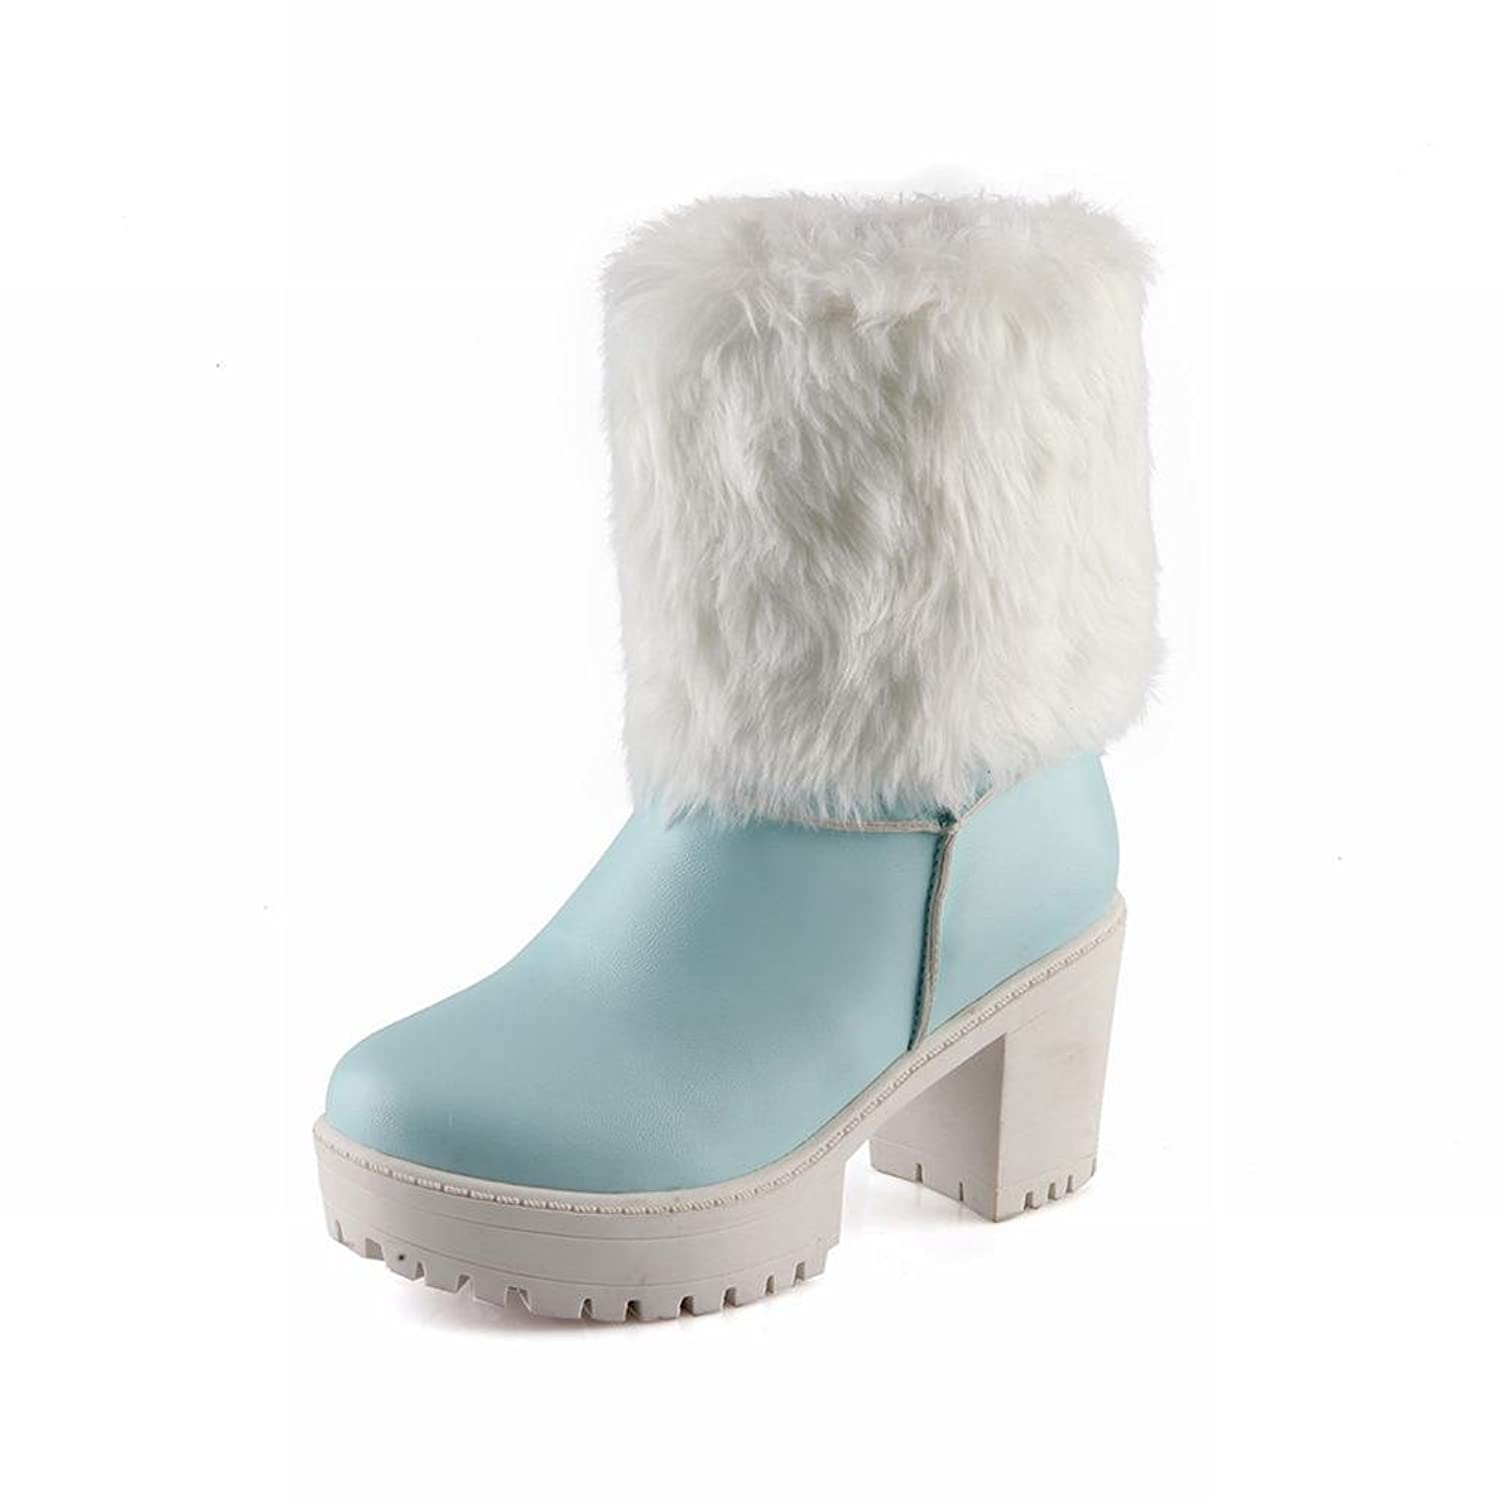 Show Shine Women's Fashion Platform High Chunky Heel Short Snow Boots